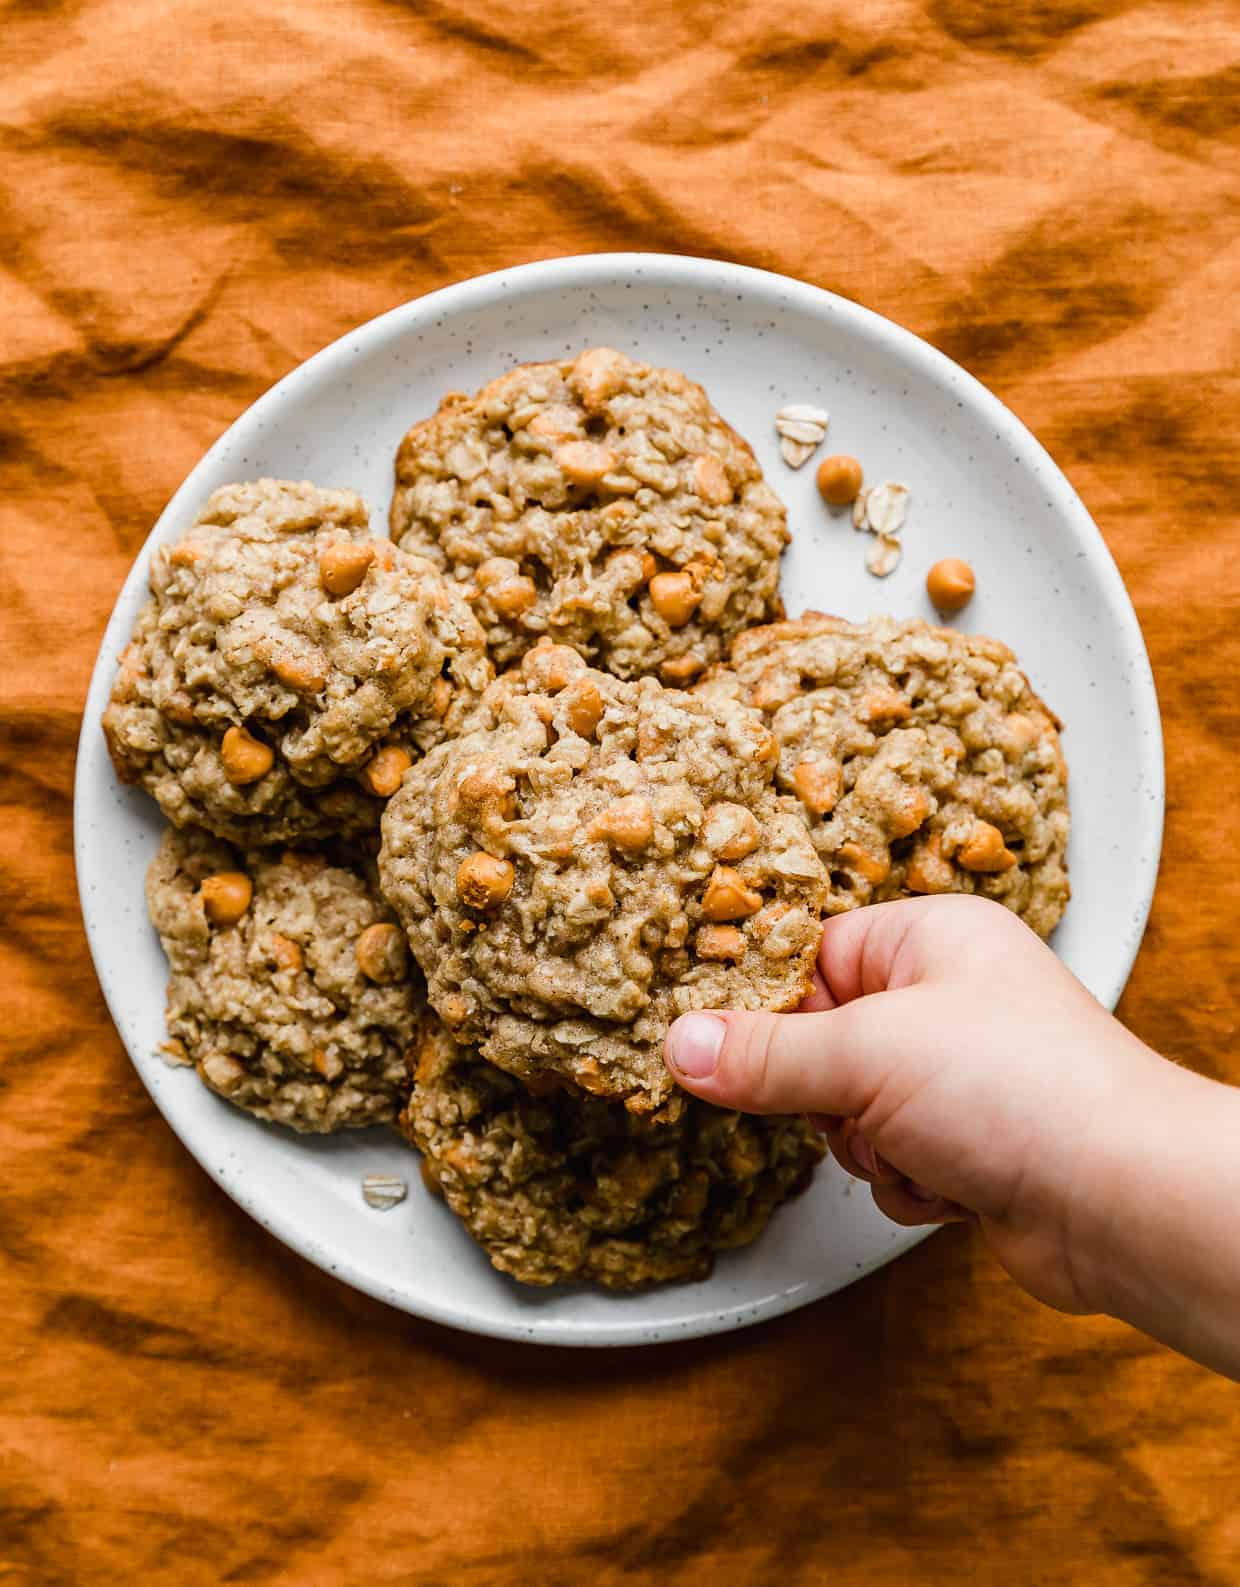 A hand grabbing an Oatmeal Butterscotch Cookie from a white plate.